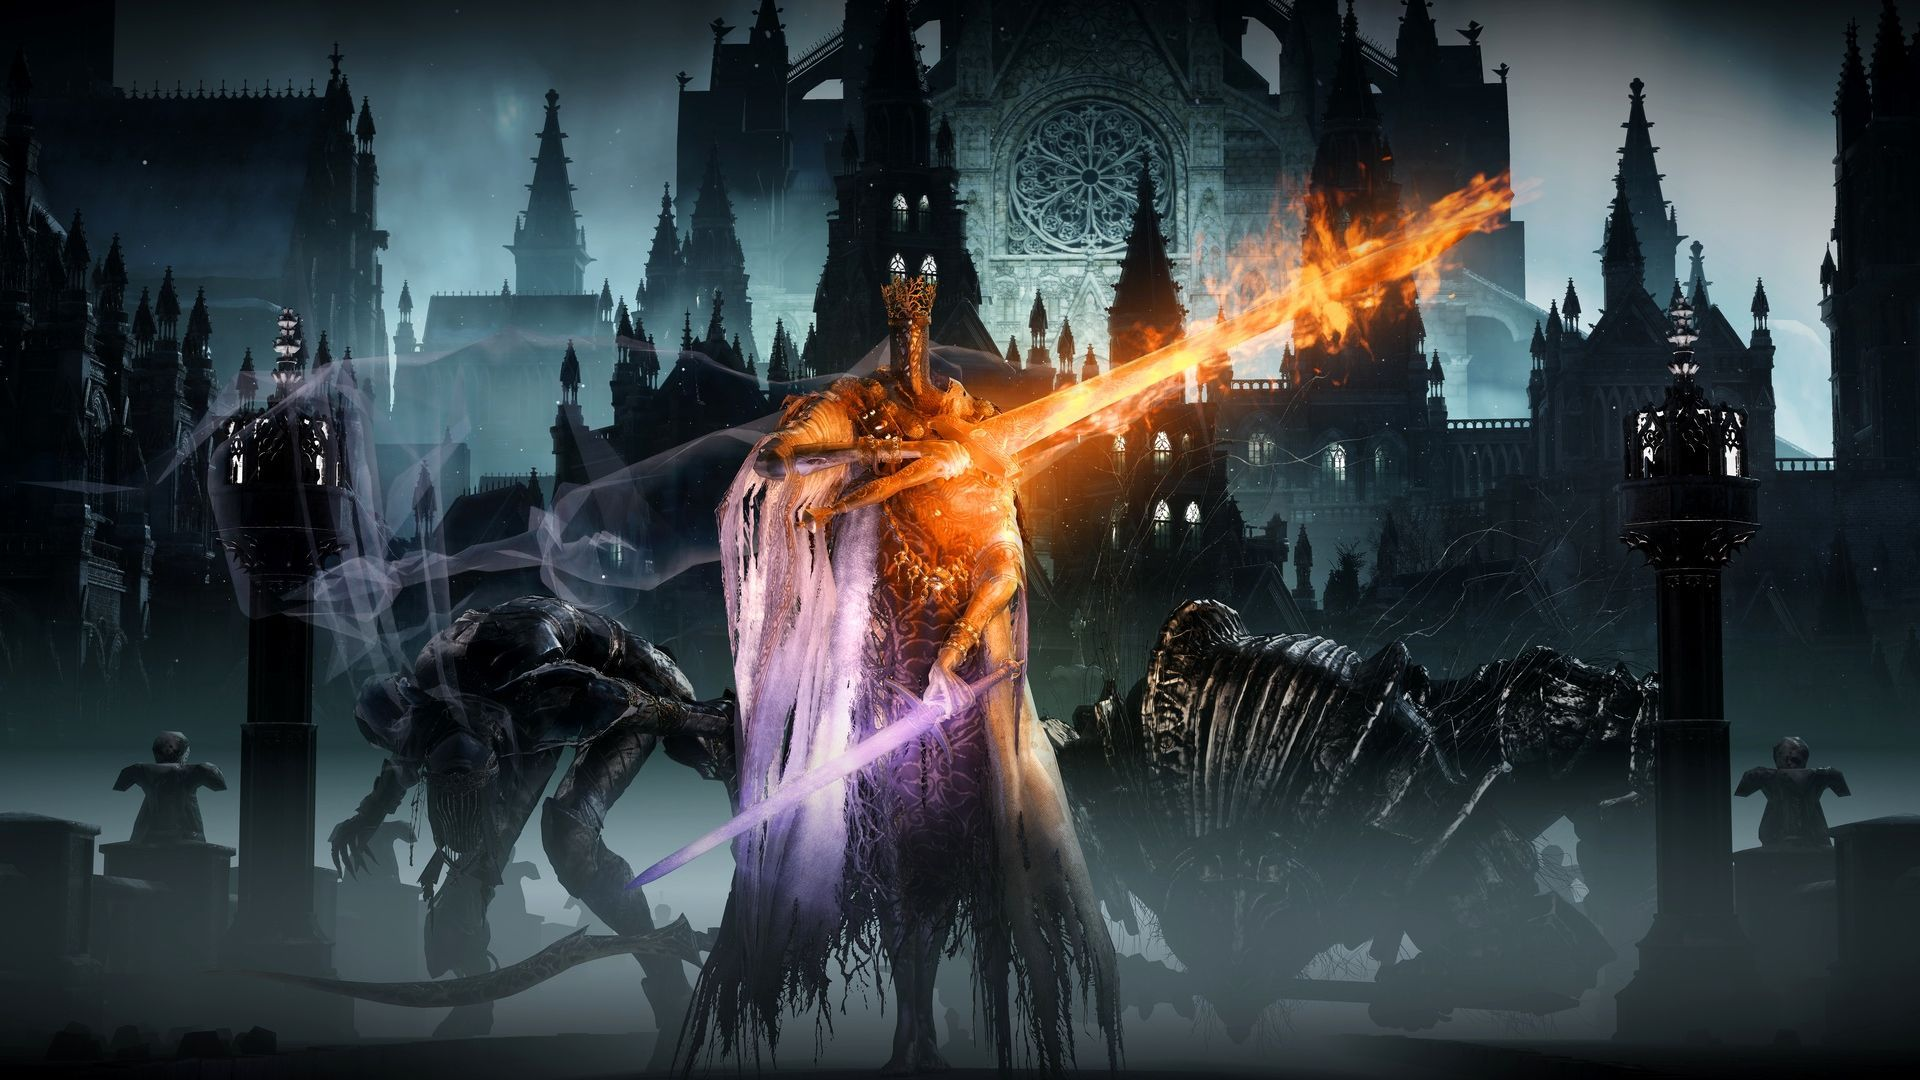 Dark Souls Wallpaper 4k Phone Ideas Wallpaper Dark Ideas Phone Souls Wallpaper In 2020 Dark Souls Wallpaper Wallpaper Most Beautiful Wallpaper